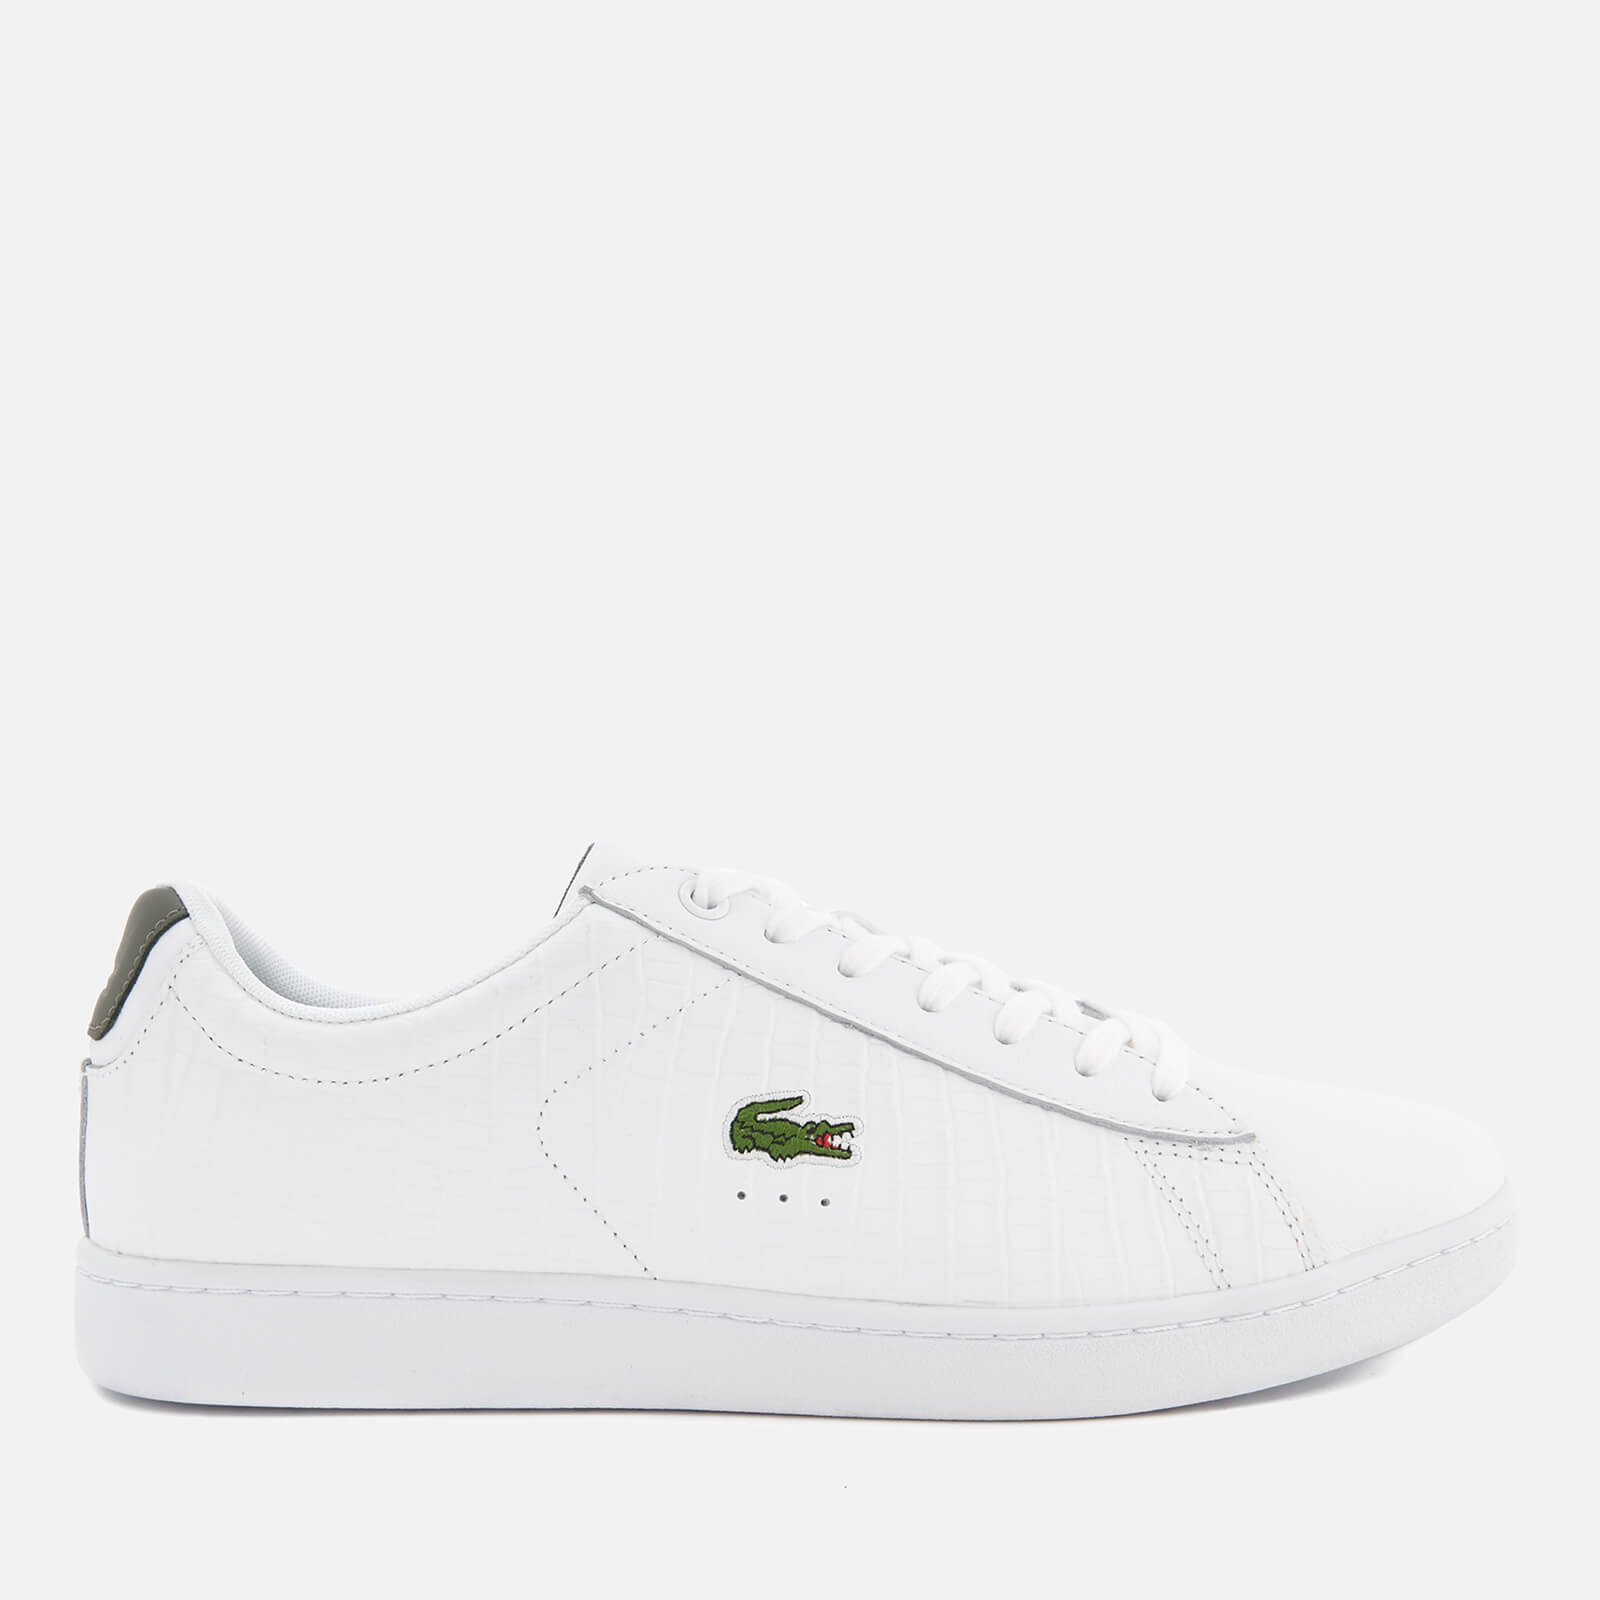 091cde2e16cc2 Lacoste Men s Carnaby Evo G117 Trainers - White Khaki - Free UK Delivery  over £50